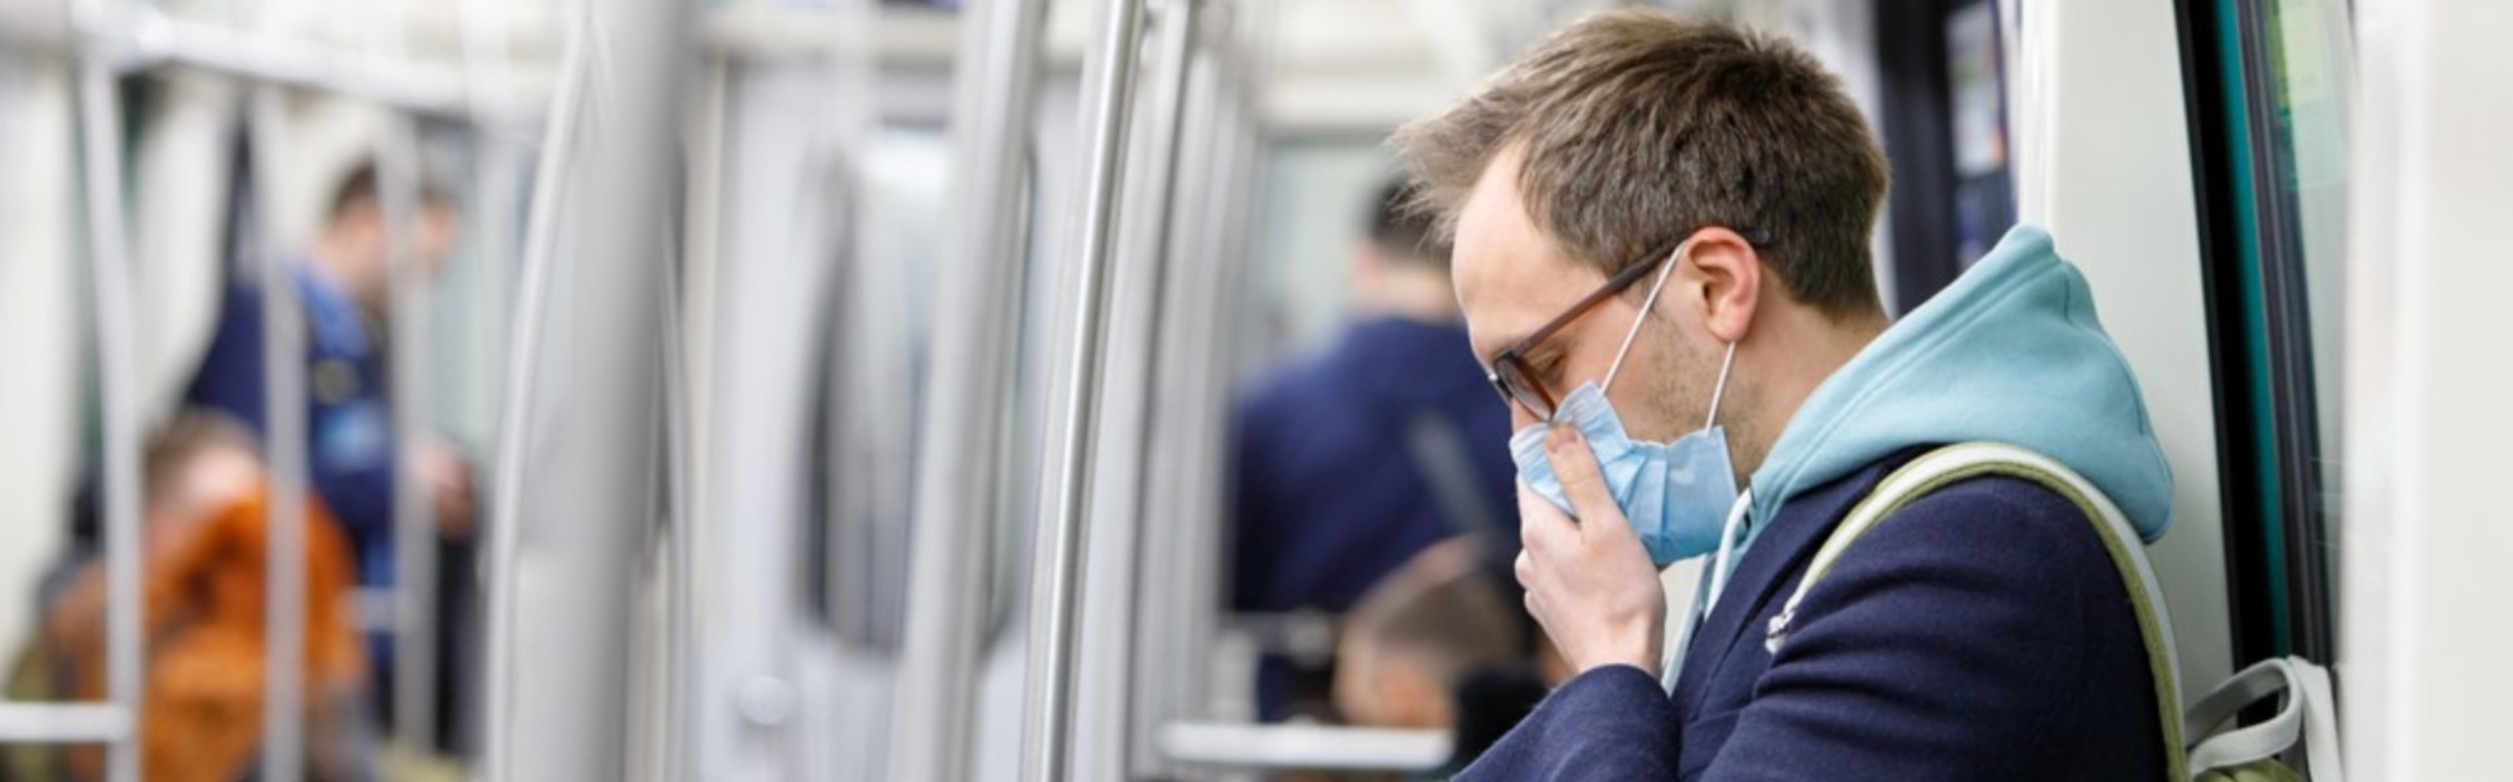 man-with-face-mask-during-transportation